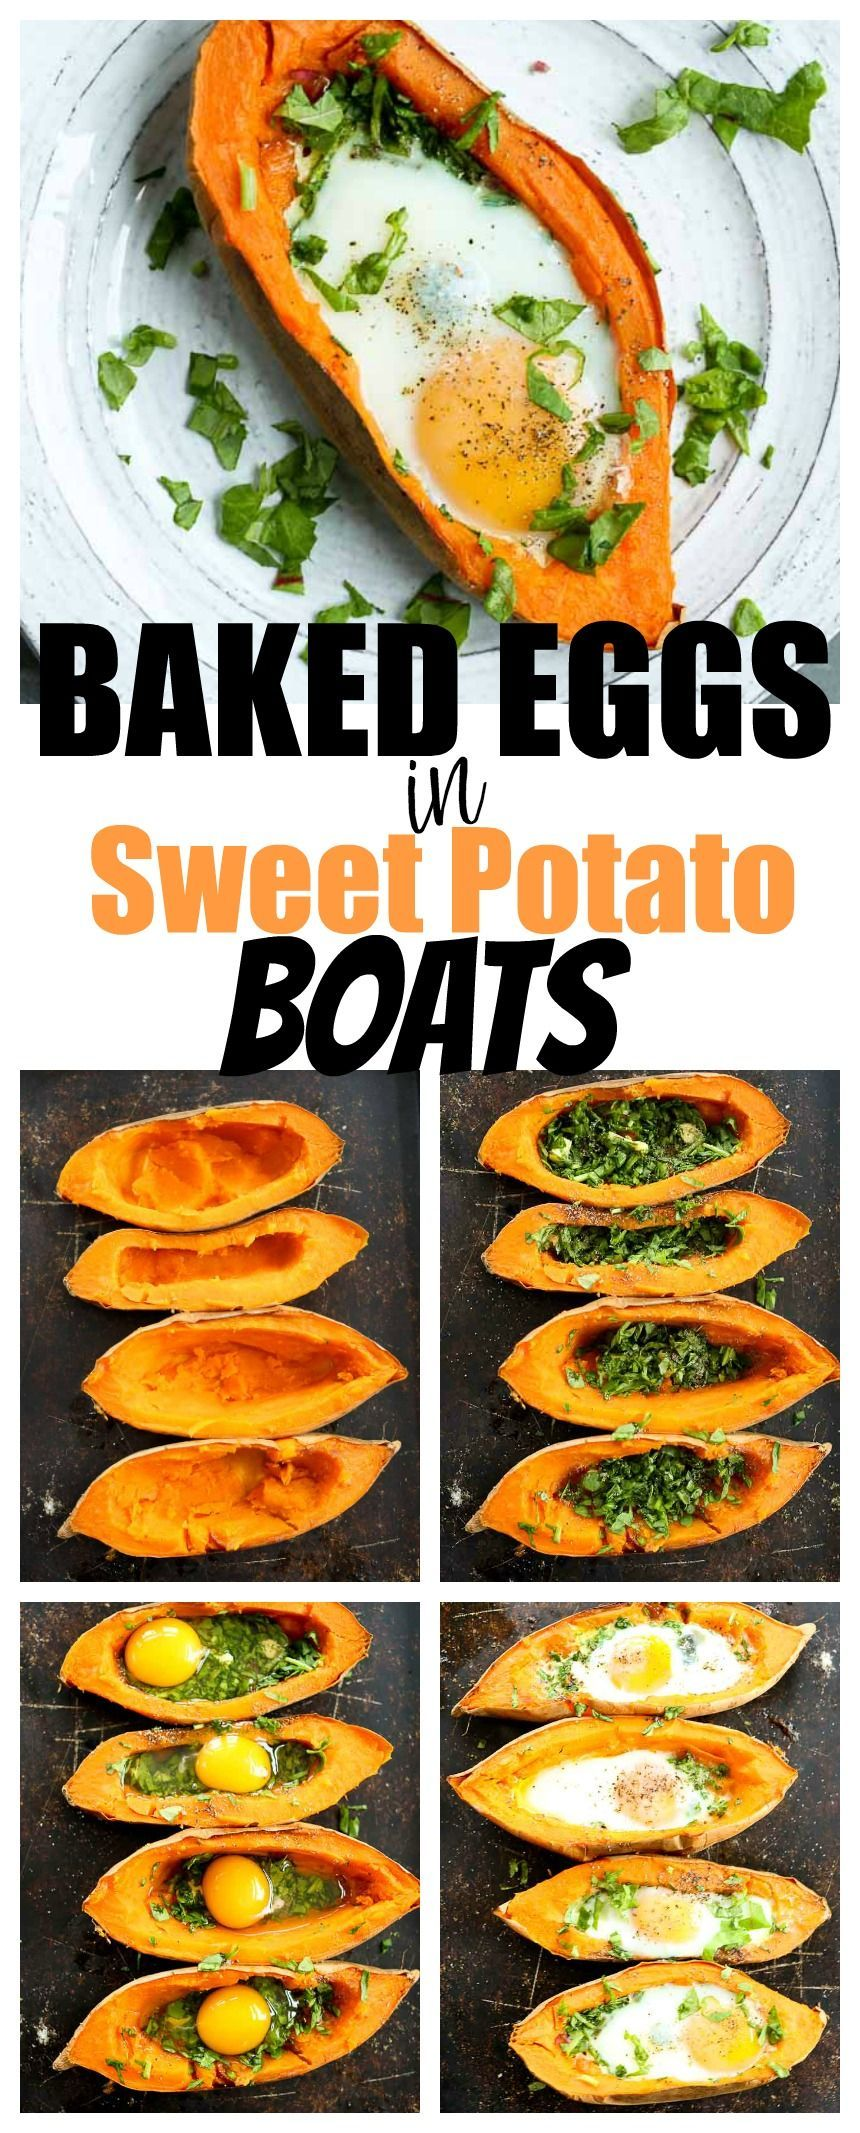 Baked Eggs and Spinach in Sweet Potato Boats Recipe -